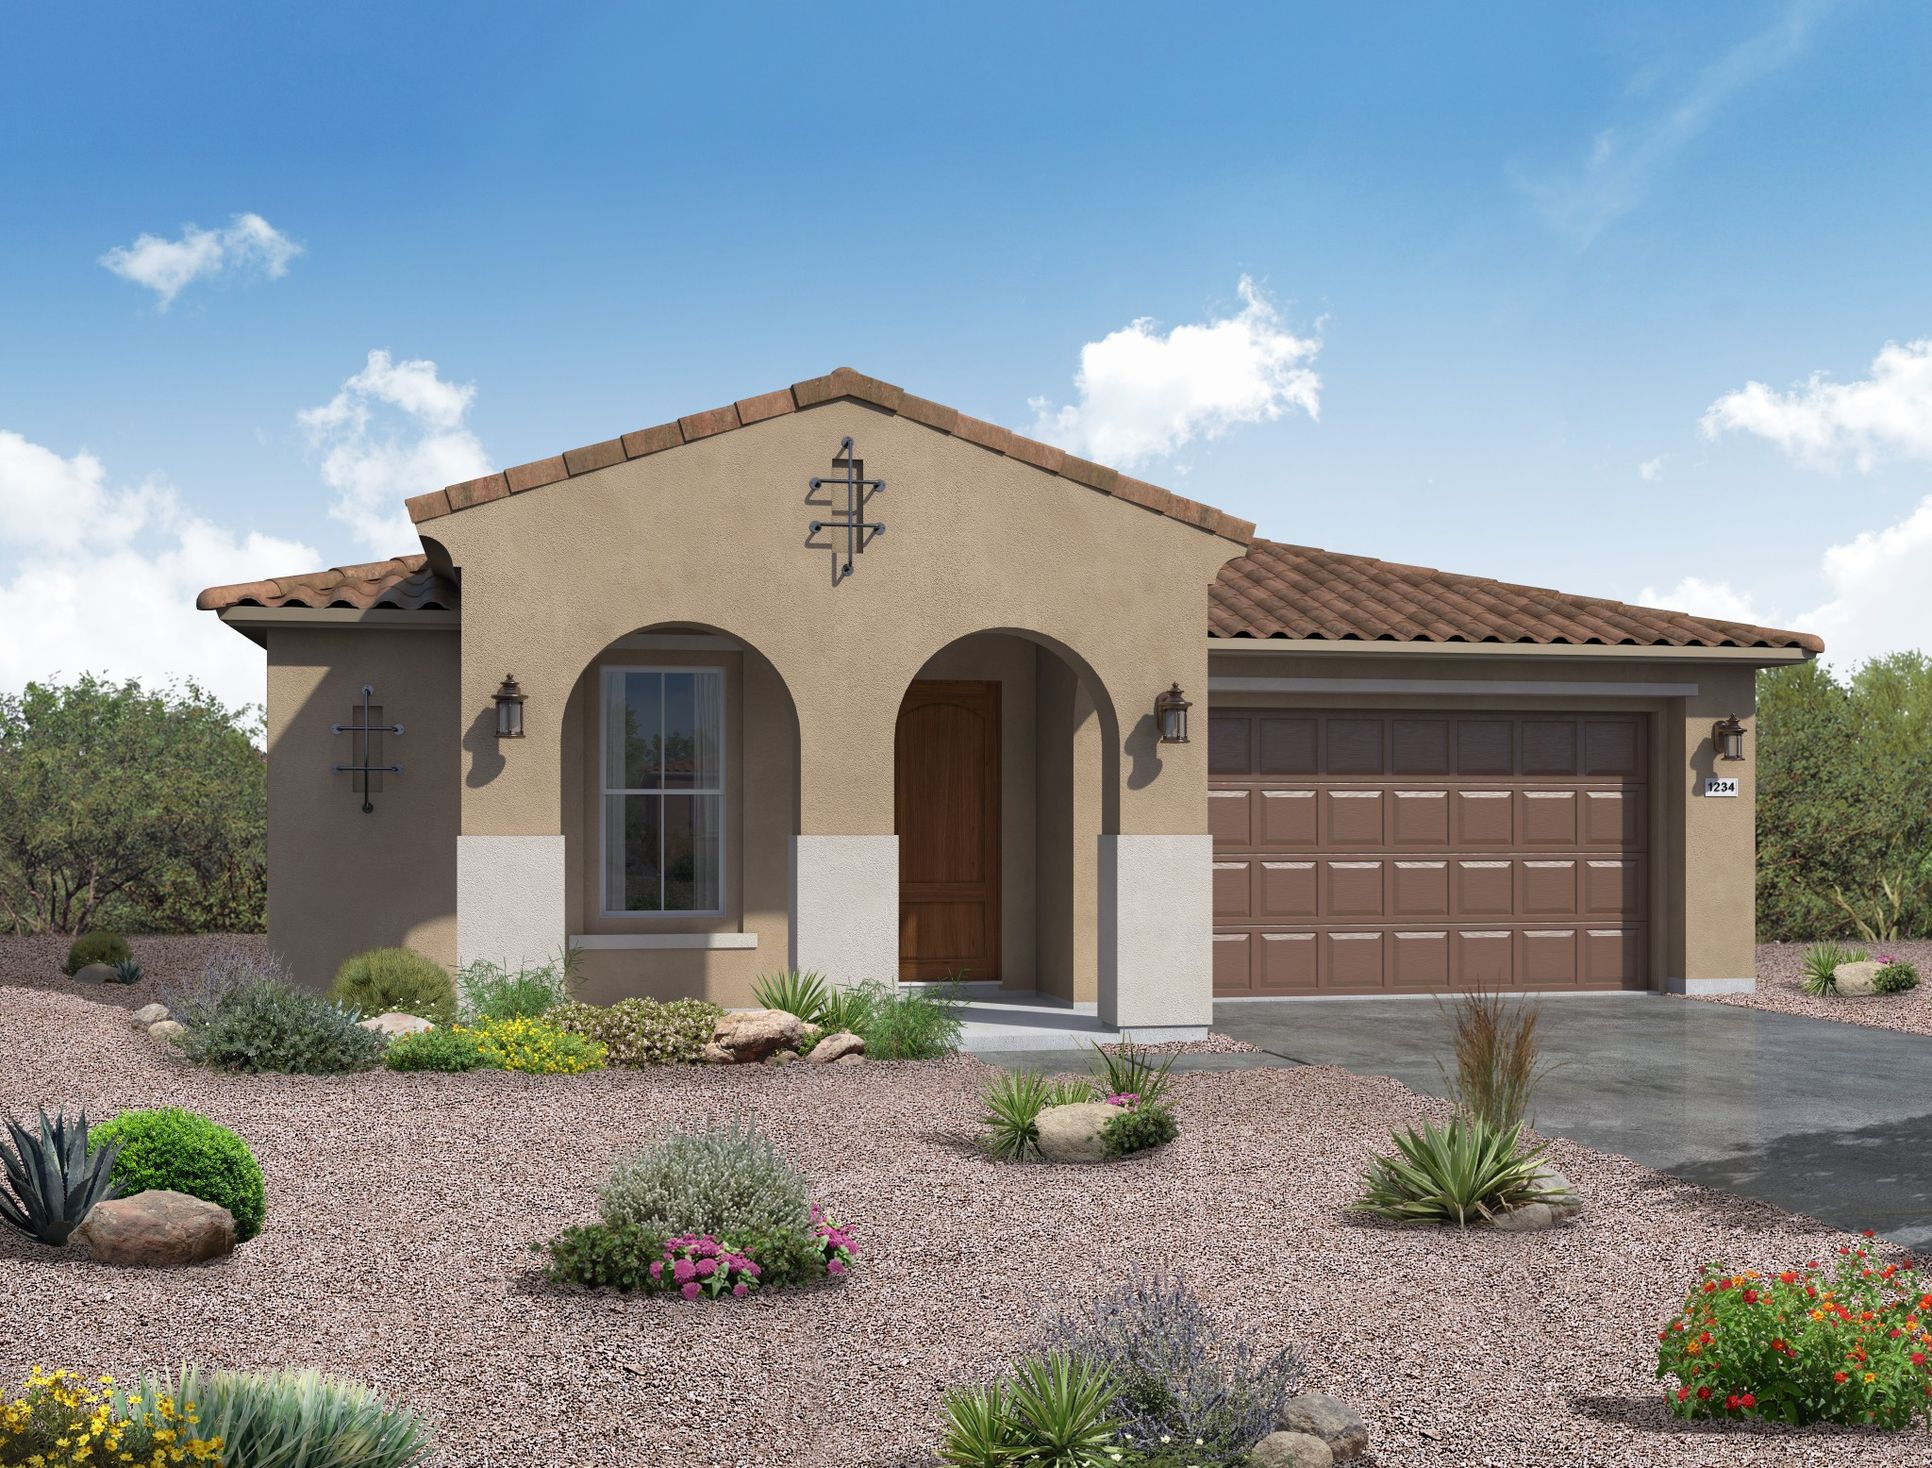 Spanish exterior elevation rendering Jimson floor plan by William Ryan Homes Phoenix:Jimson at Vistancia - Spanish Exterior